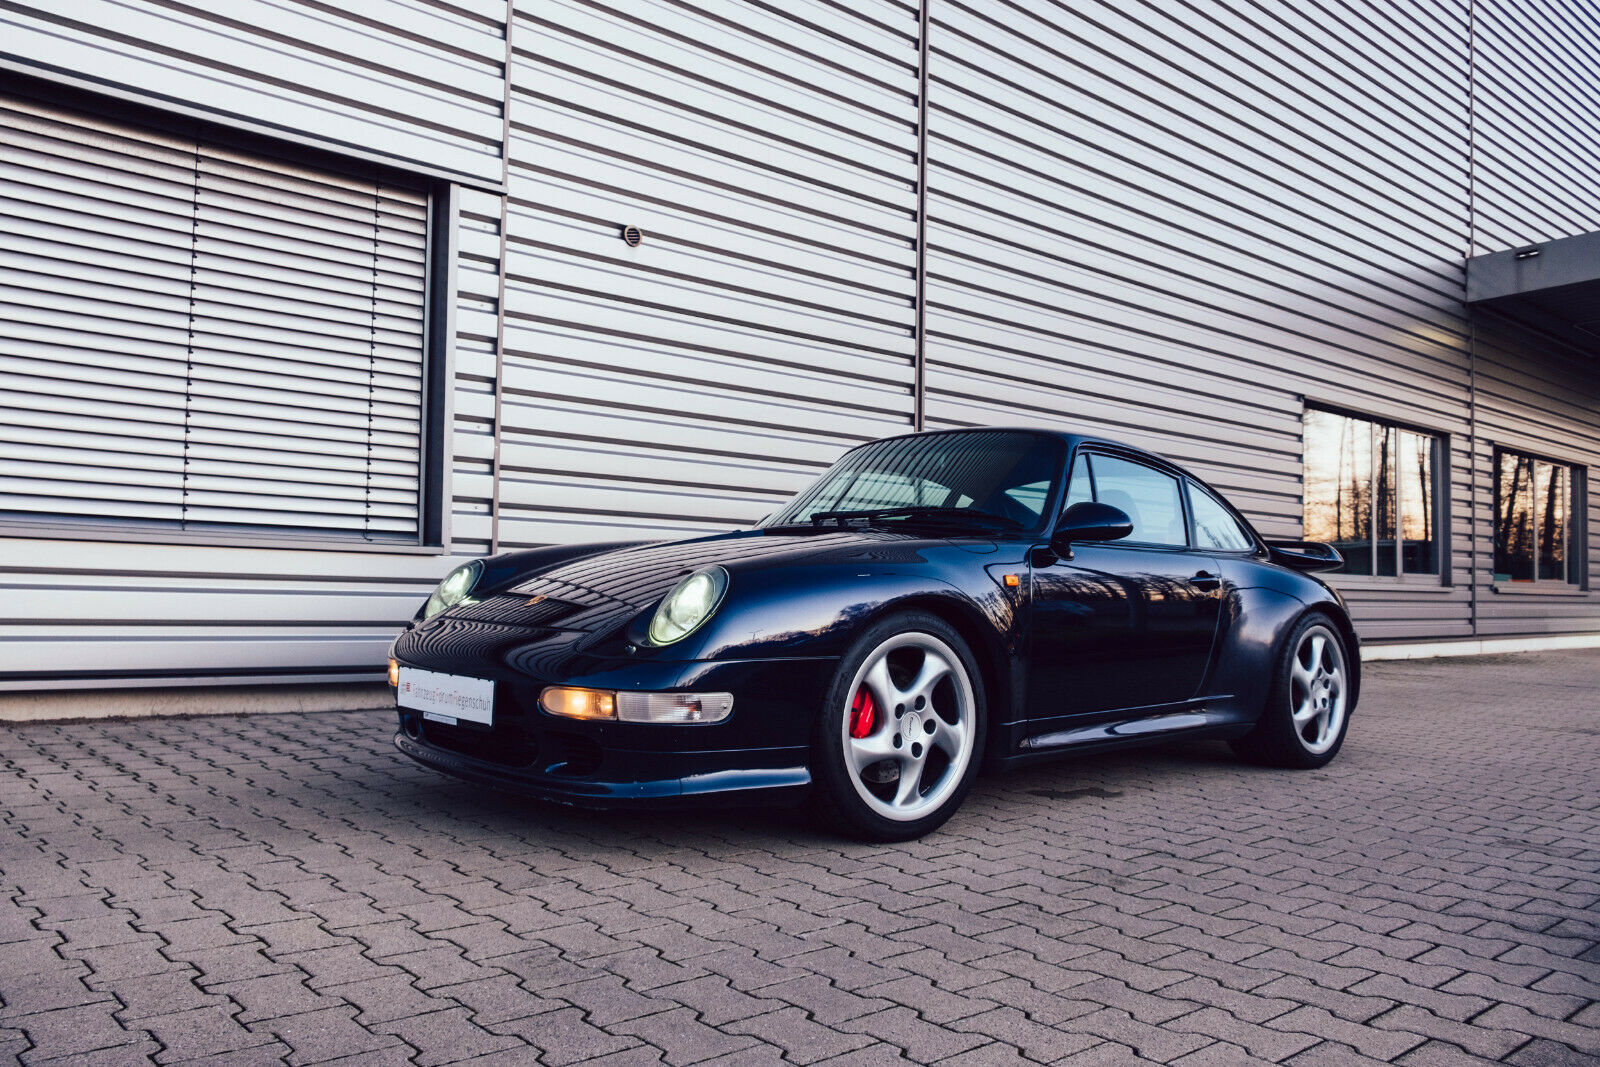 Porsche 993 Turbo WLS 1